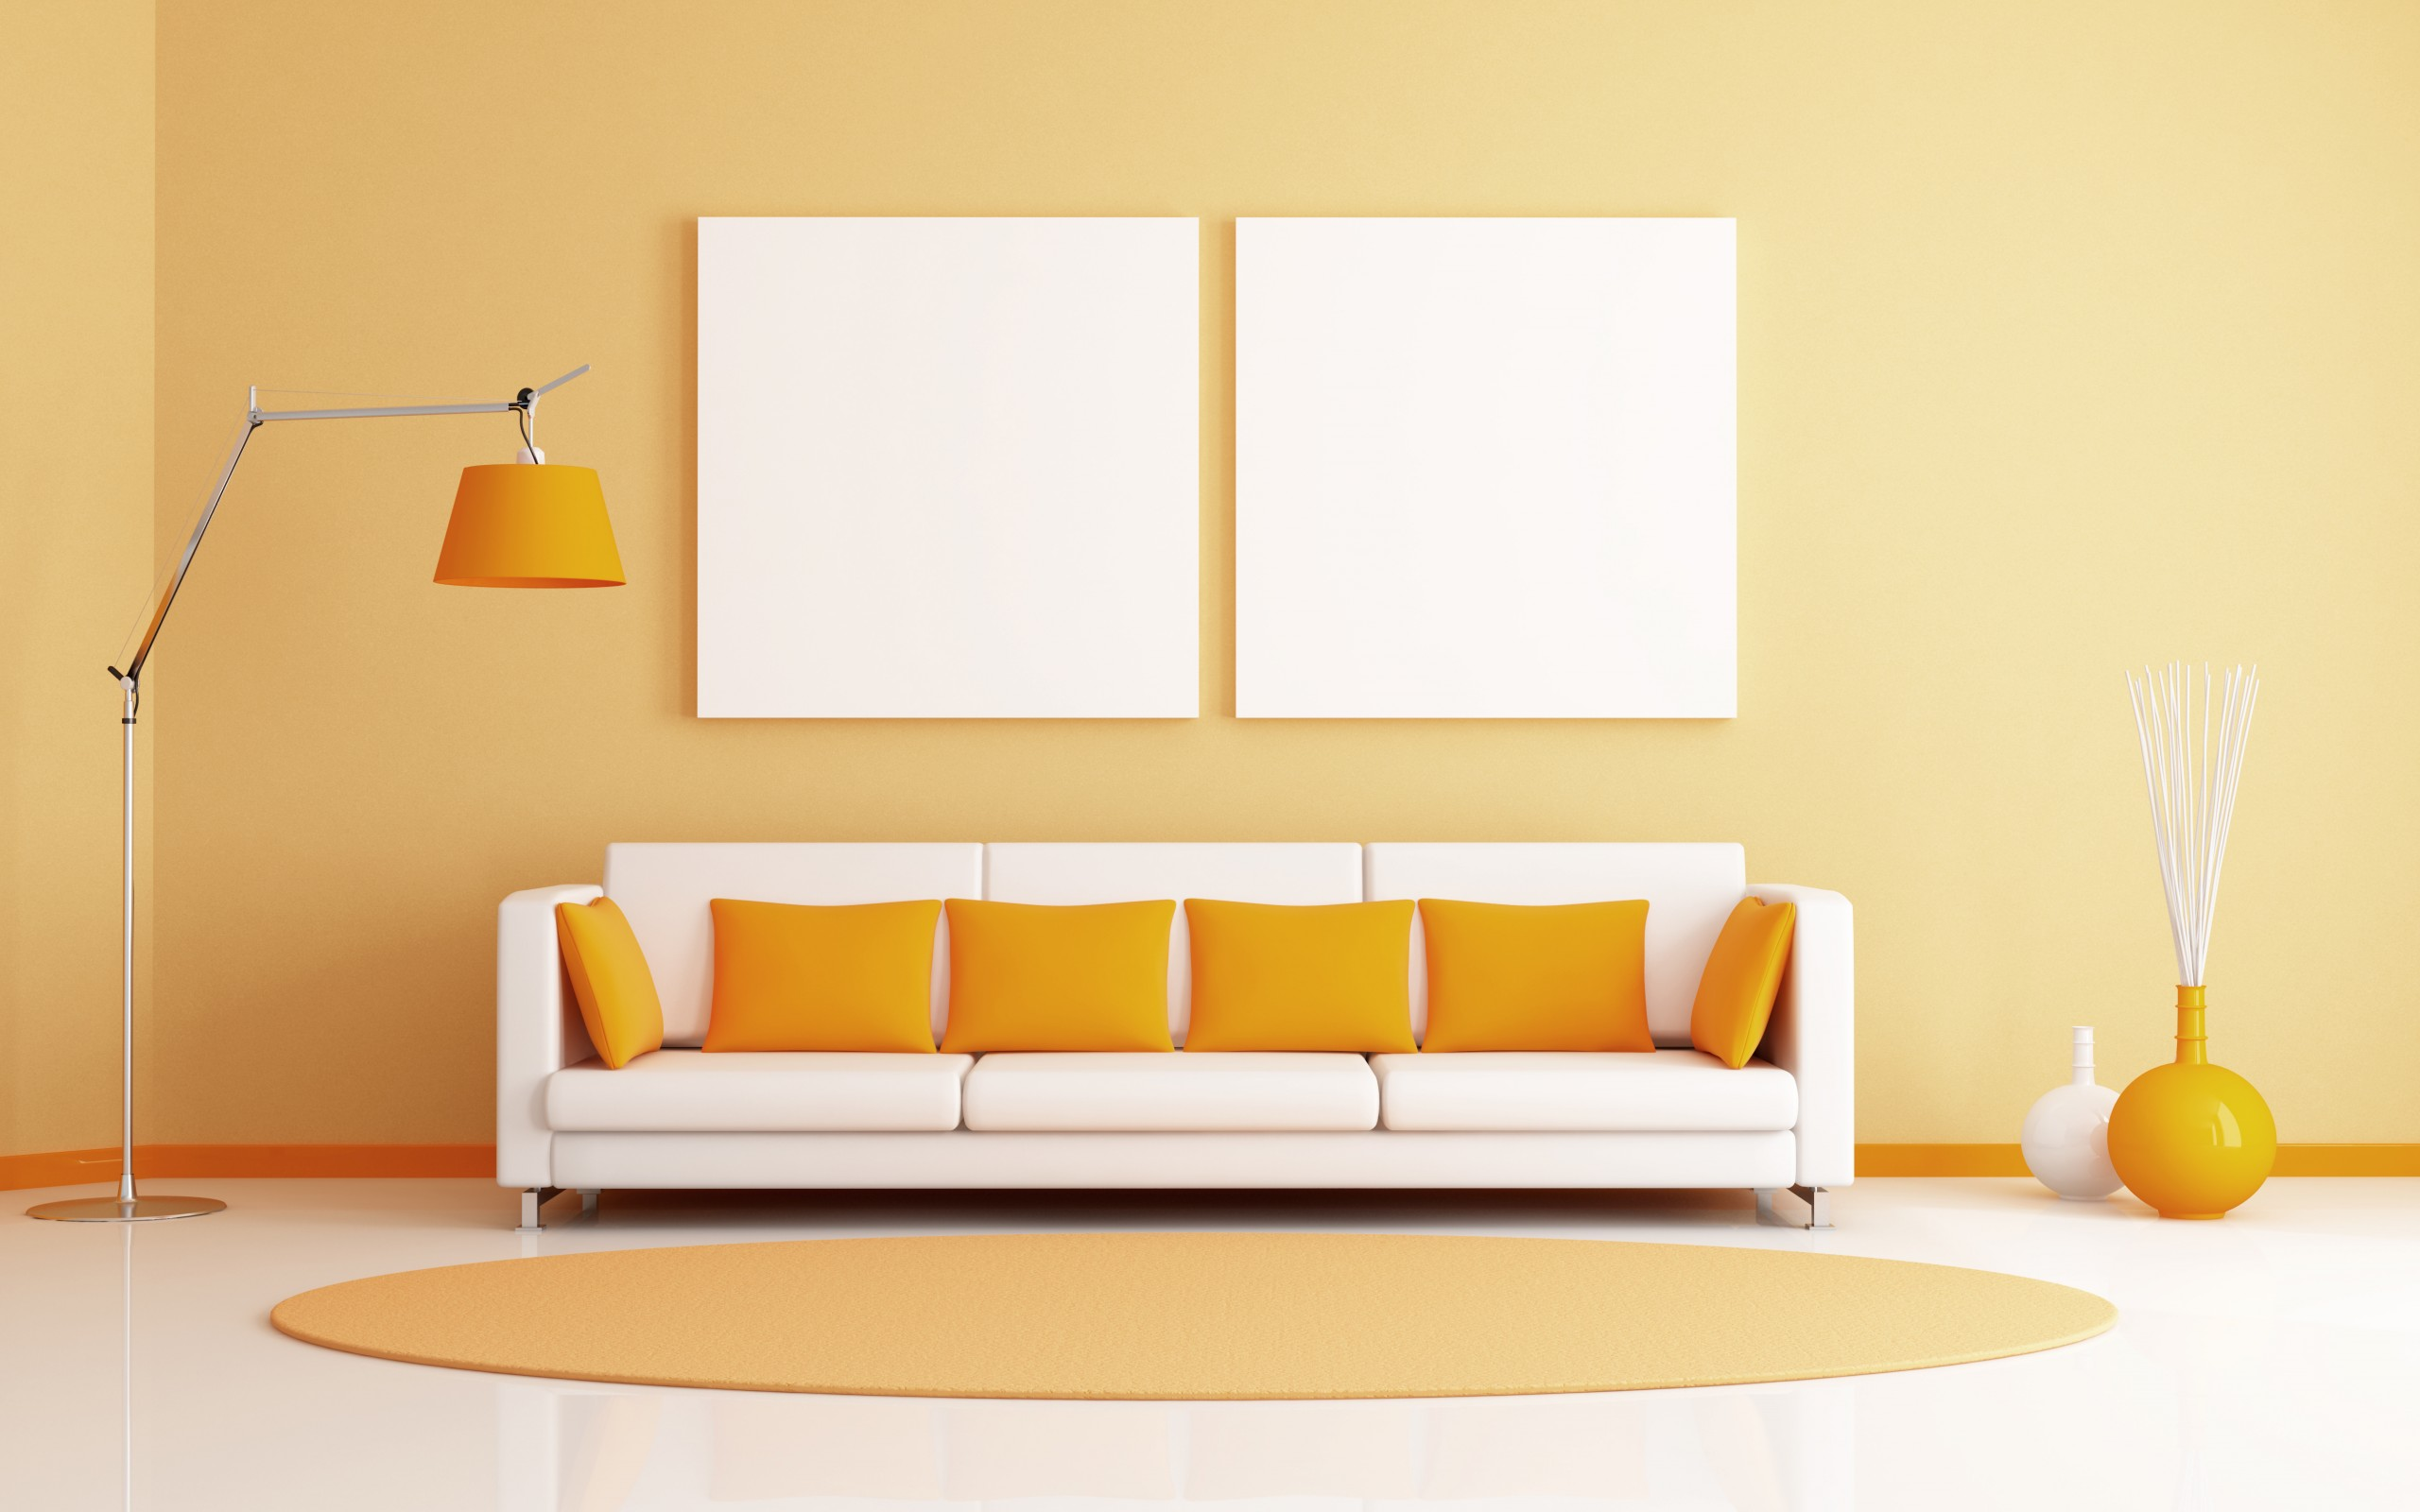 orange room sofa and pillows wallpapers - 2560x1600 - 358916